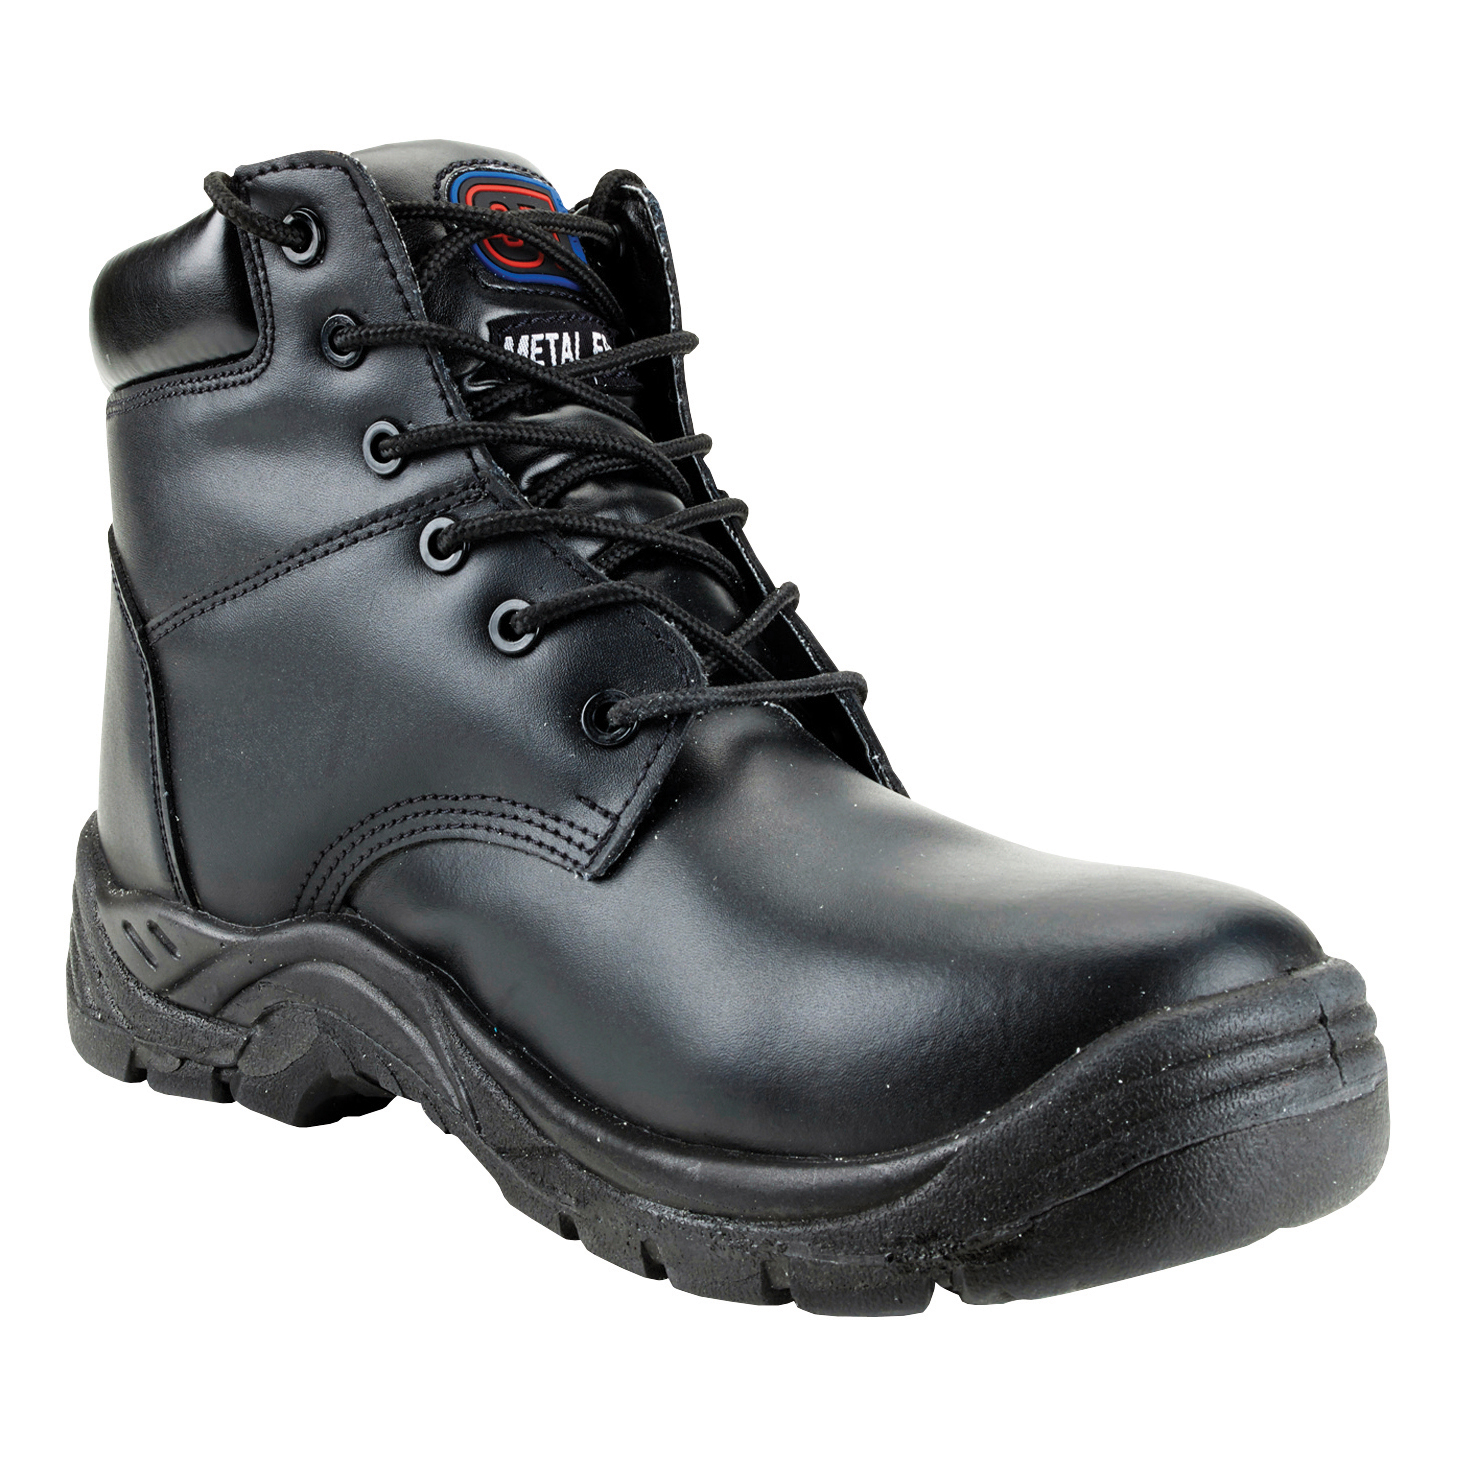 ST Toelite Boot Leather Comp' Midsole Safety Toecap Metal Free sze 10 Blk Ref 90175 *Approx 3 Day L/Time*